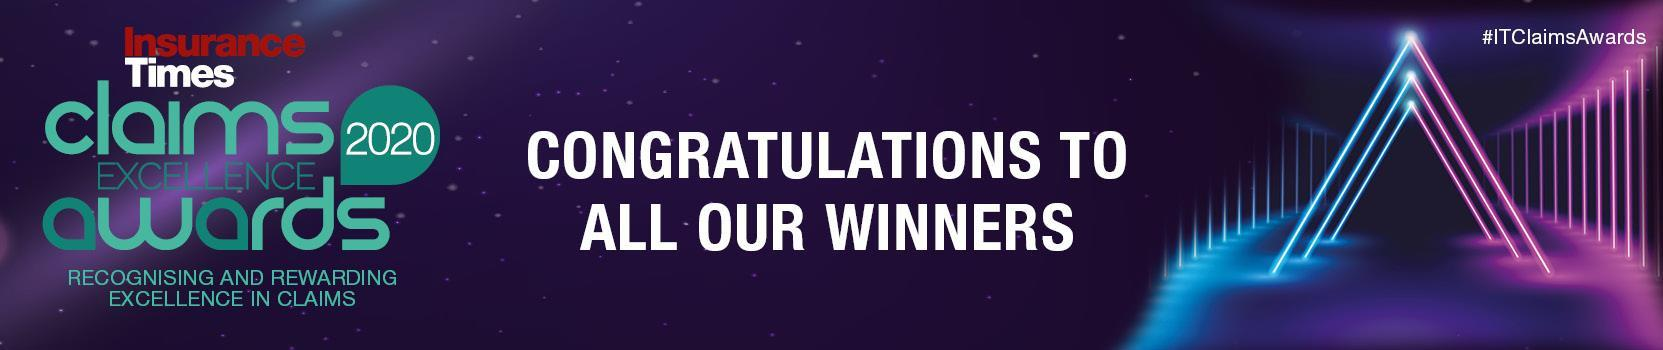 Winners announced | Insurance Times Claims Awards 2020 | 15 October 2020 | Royal Garden Hotel